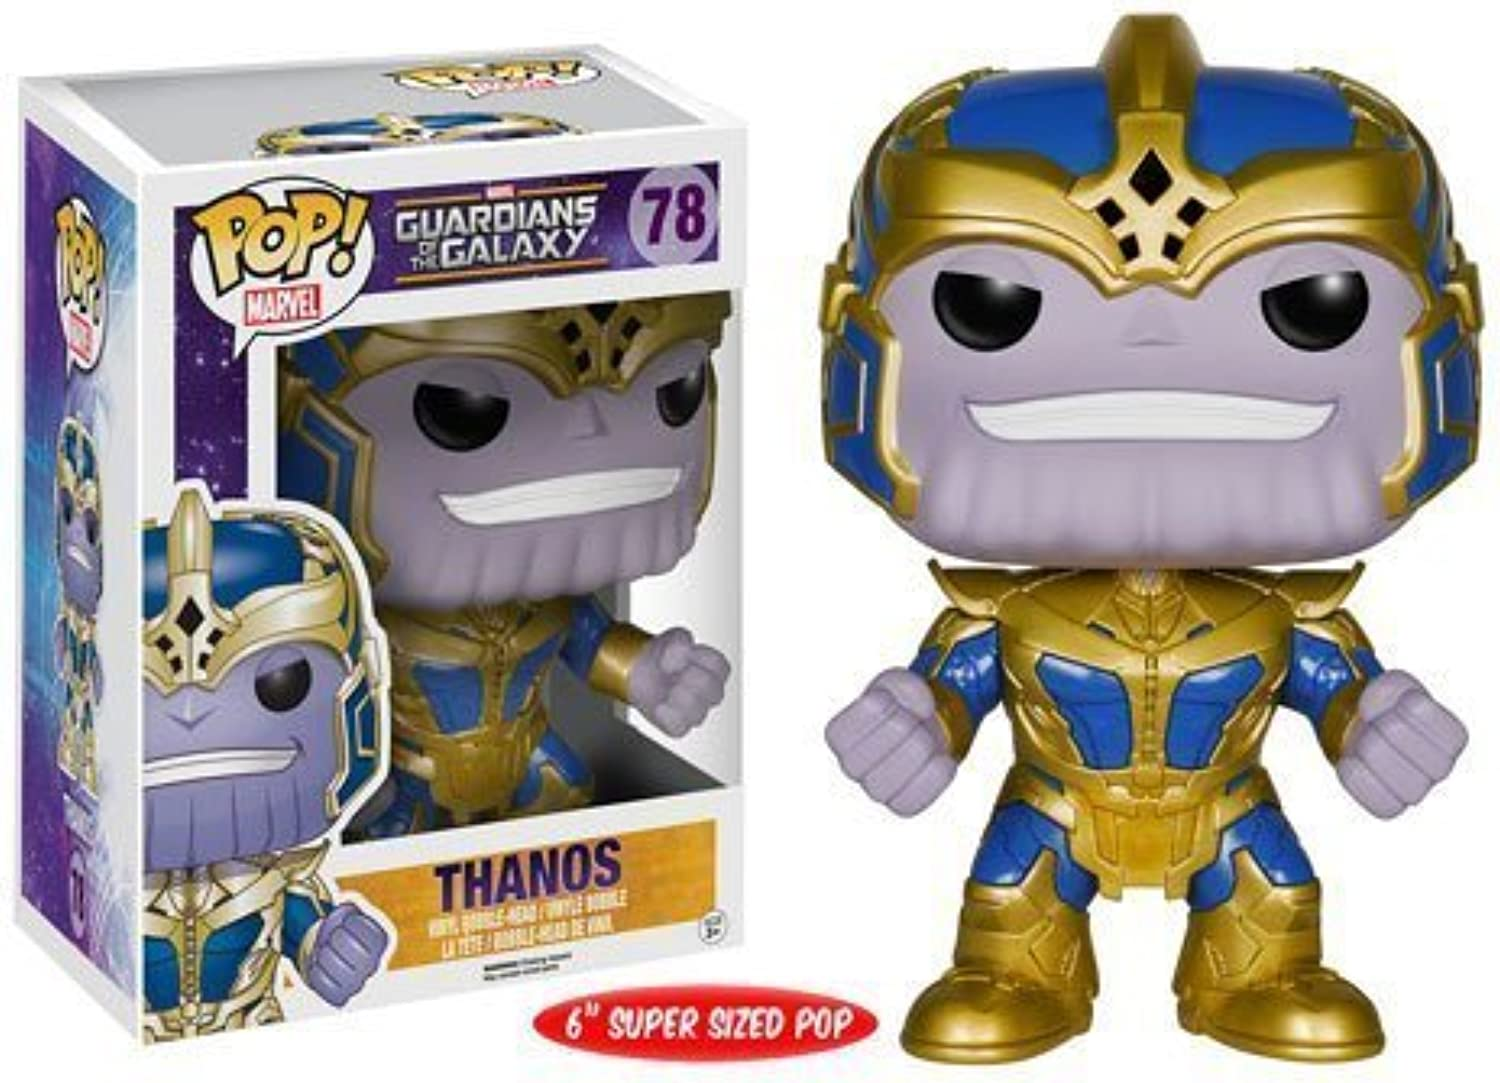 Guardians of the Galaxy Thanos 6-Inch Pop  Vinyl Bobble Head Figure by Funko